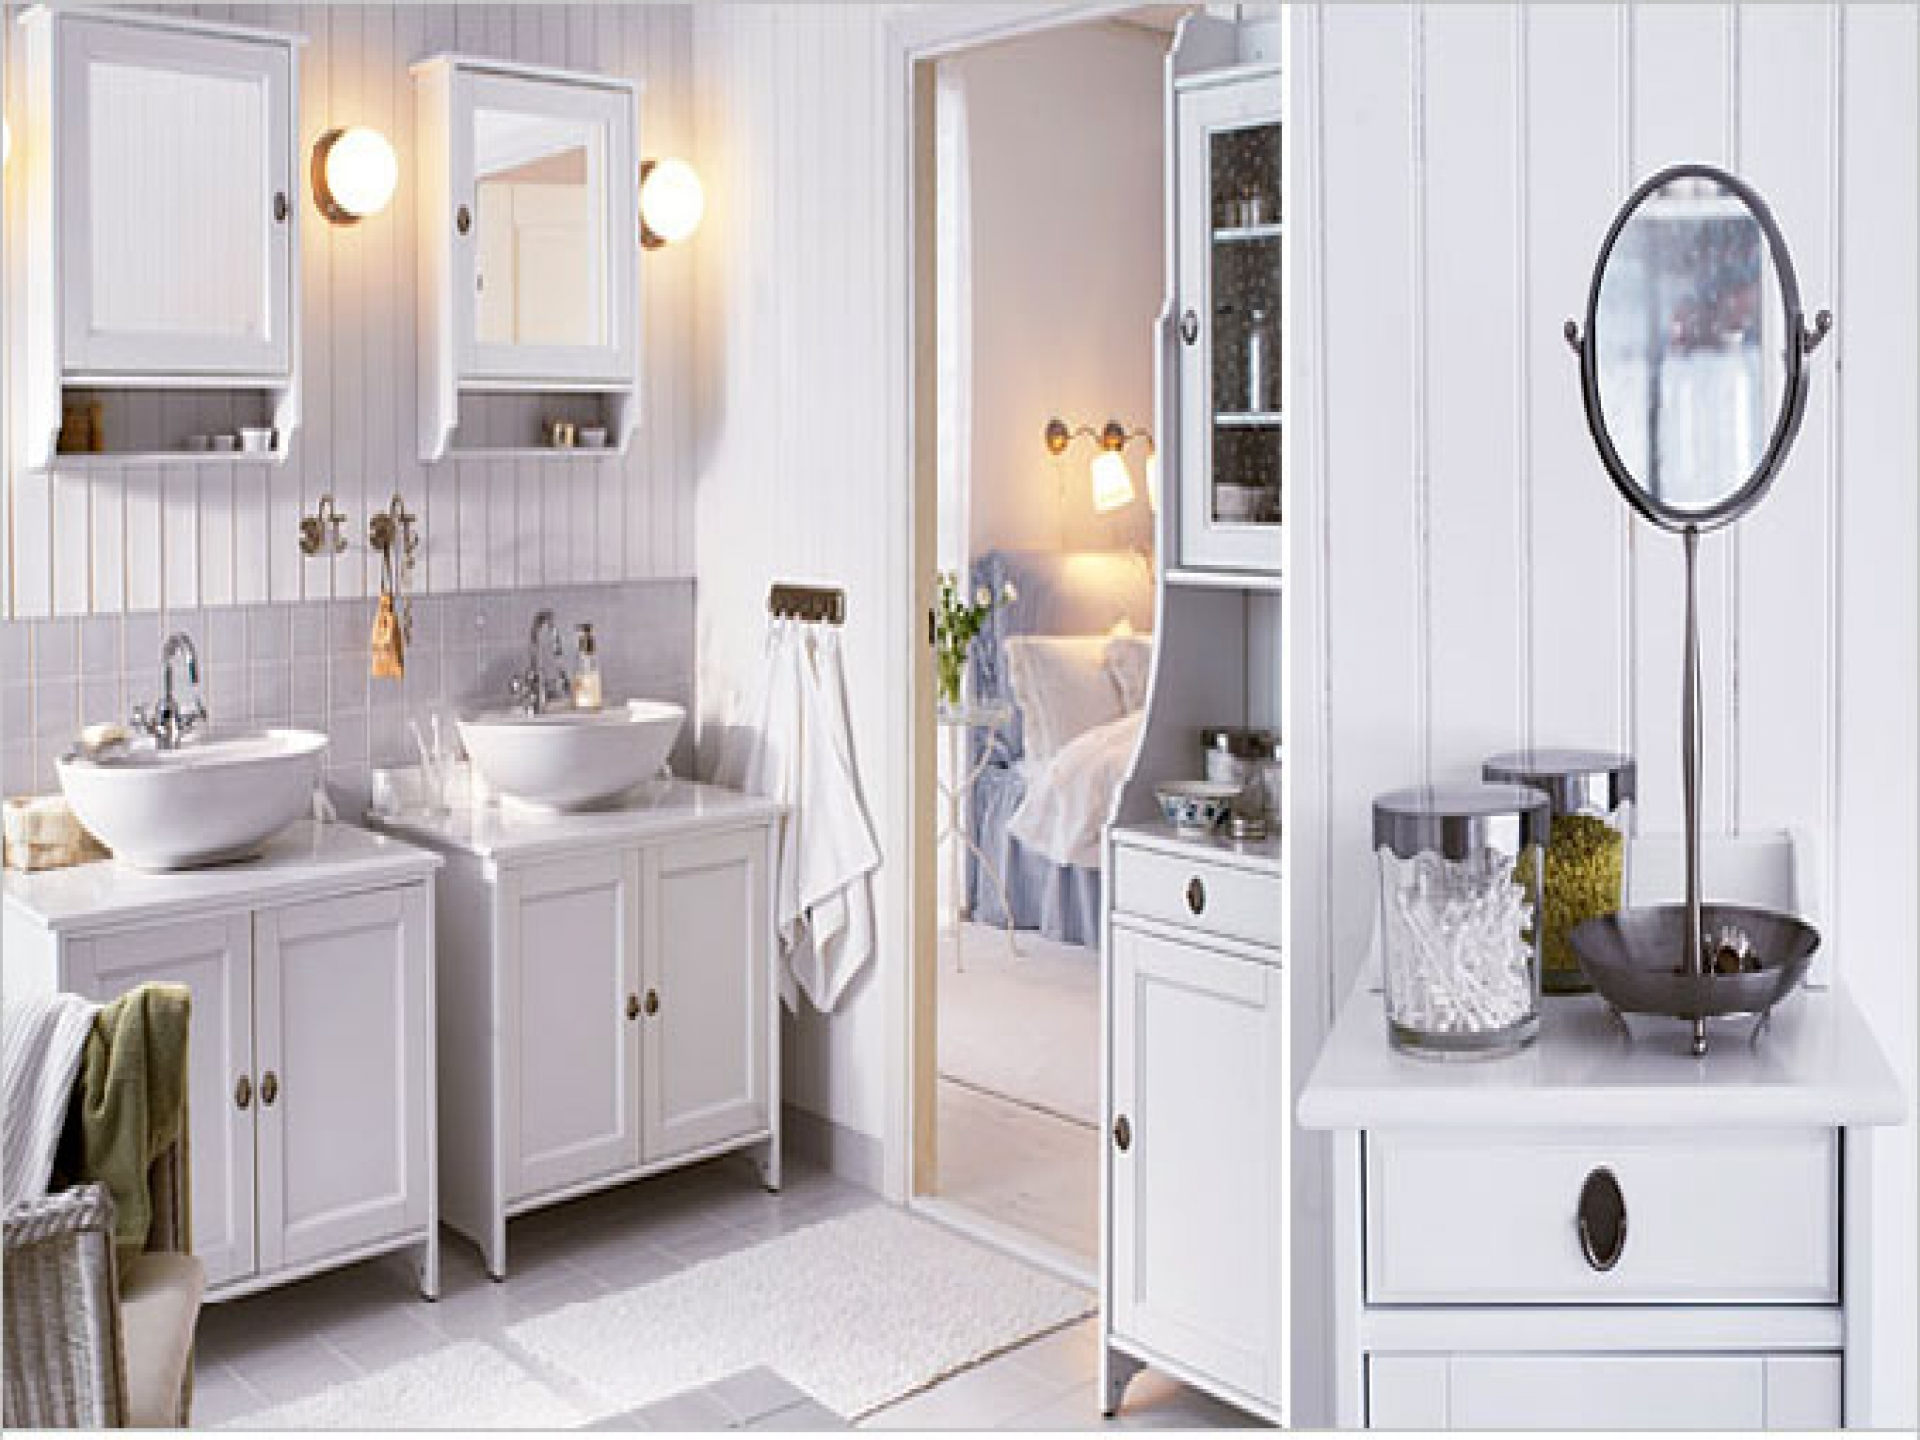 Ikea bath cabinet invades every bathroom with dignity for Bathroom furniture design ideas